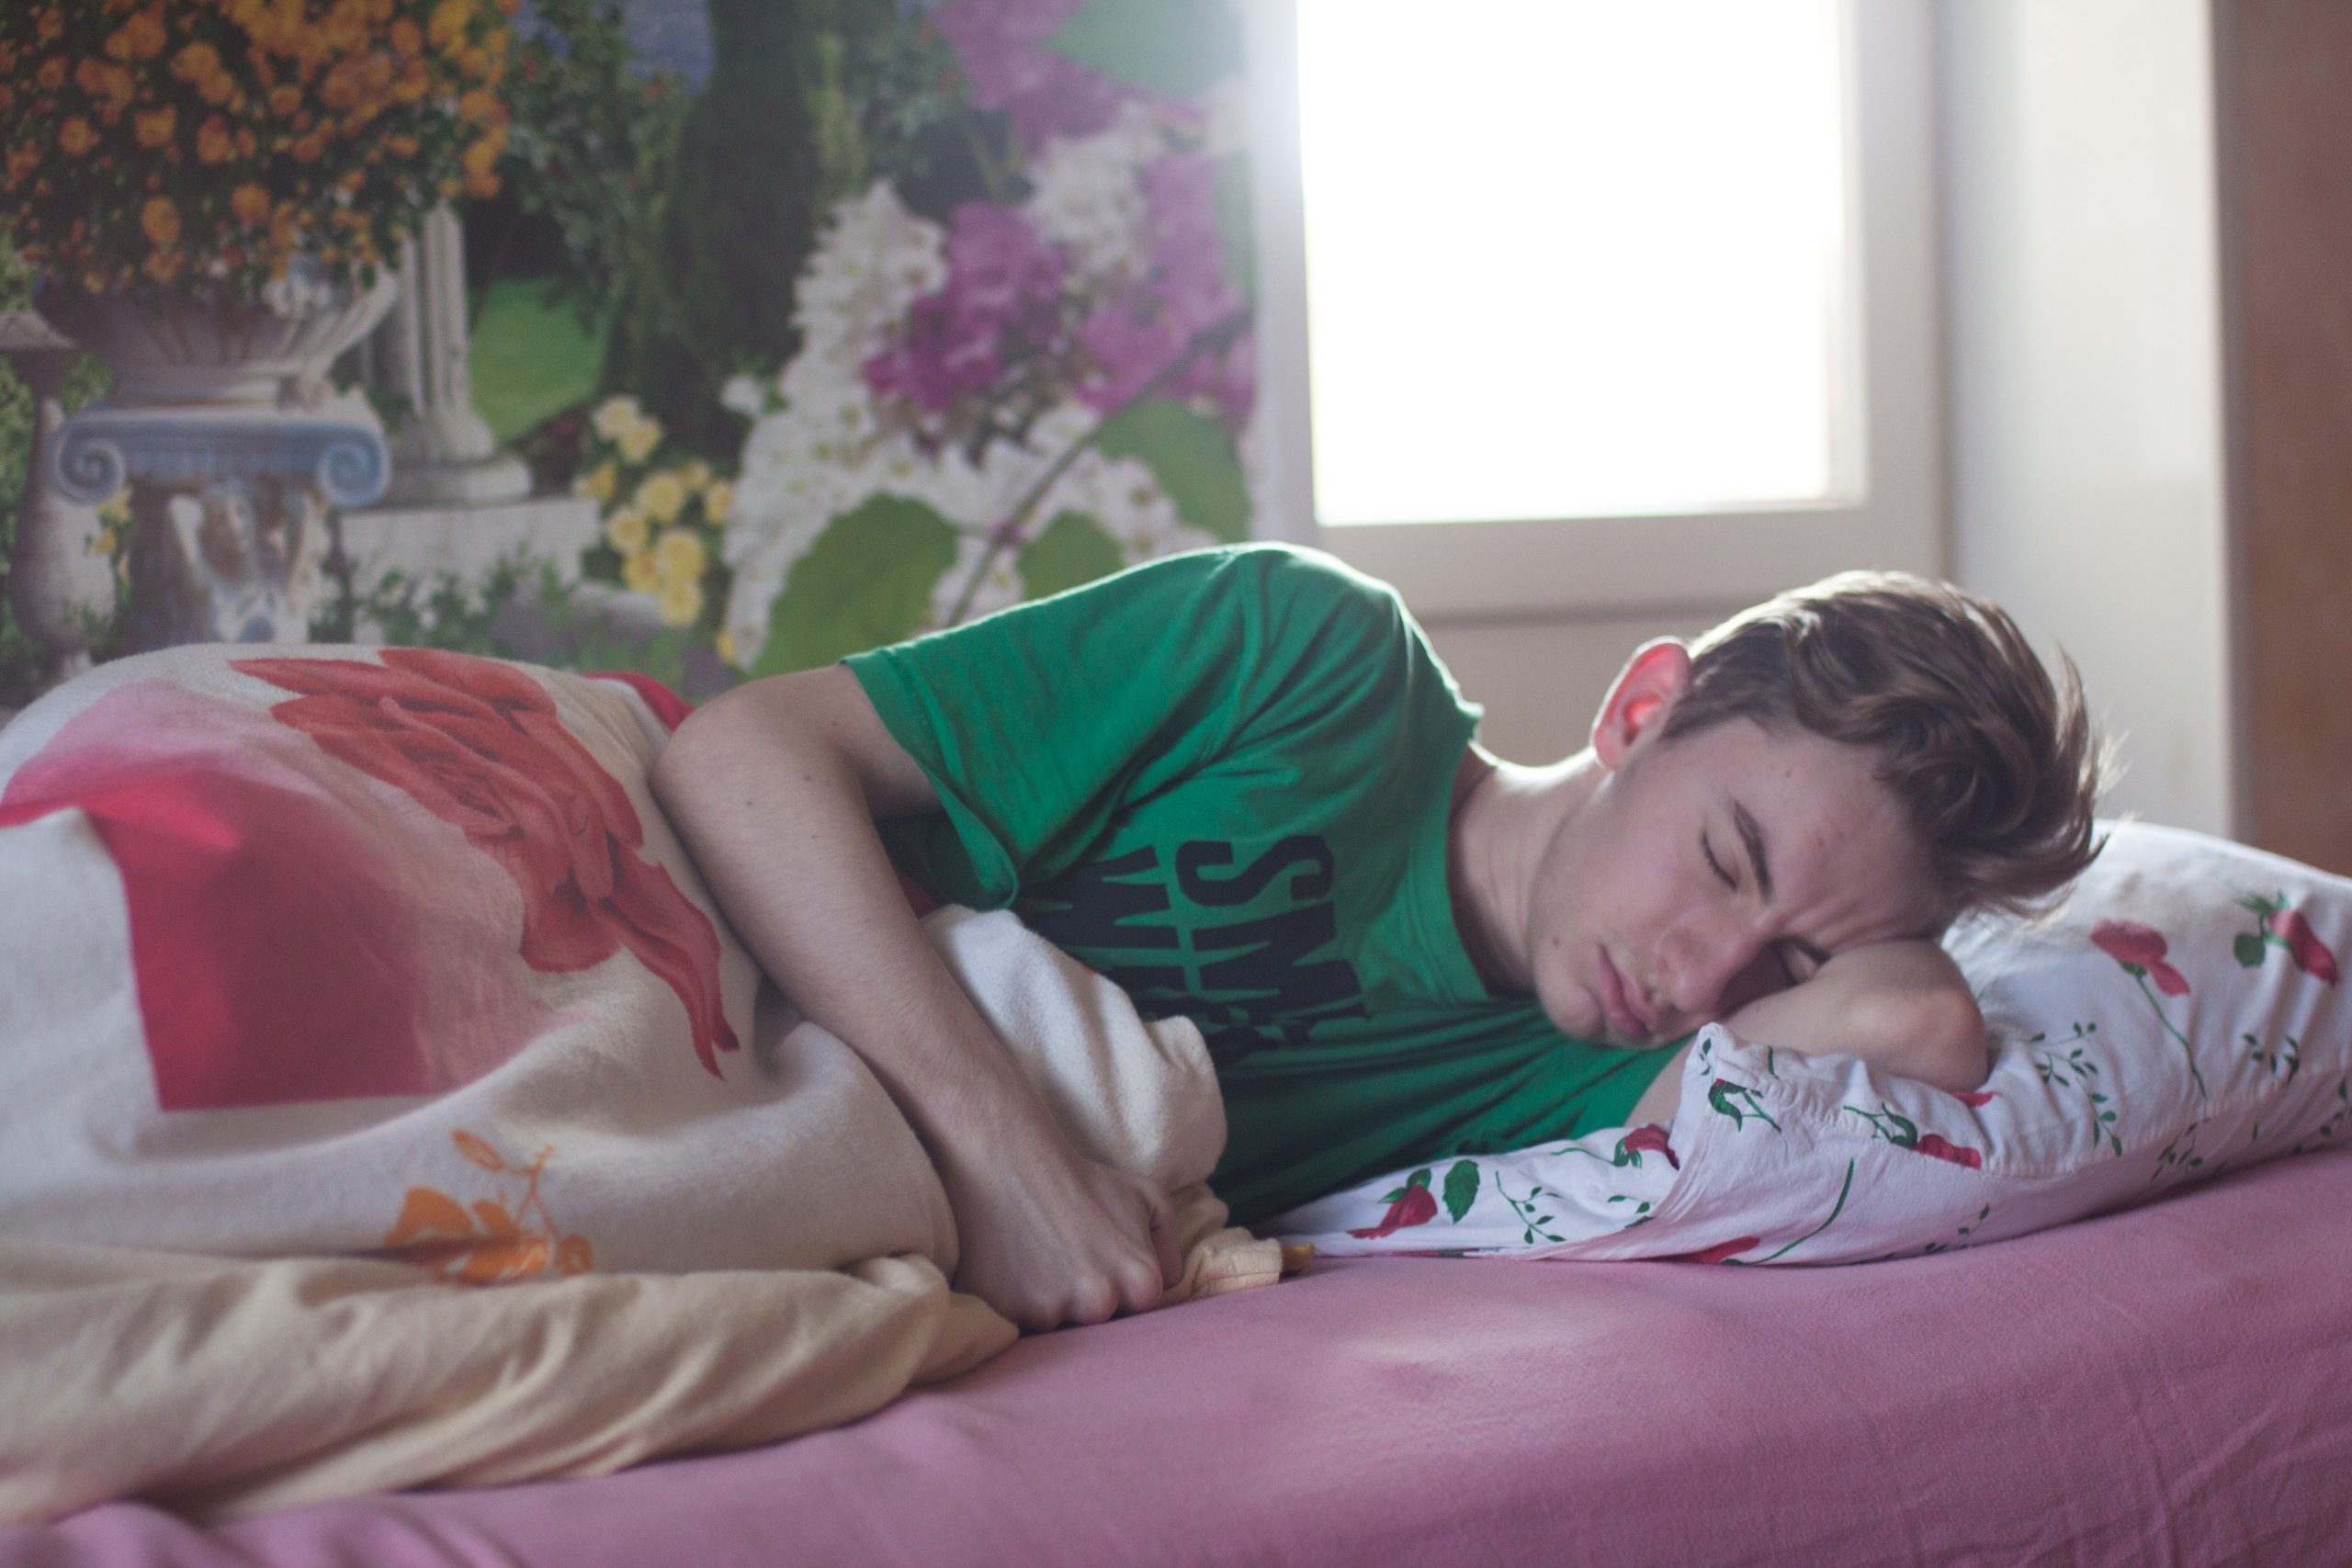 man in a green shirt sleeping in bed with a floral print, rem sleep